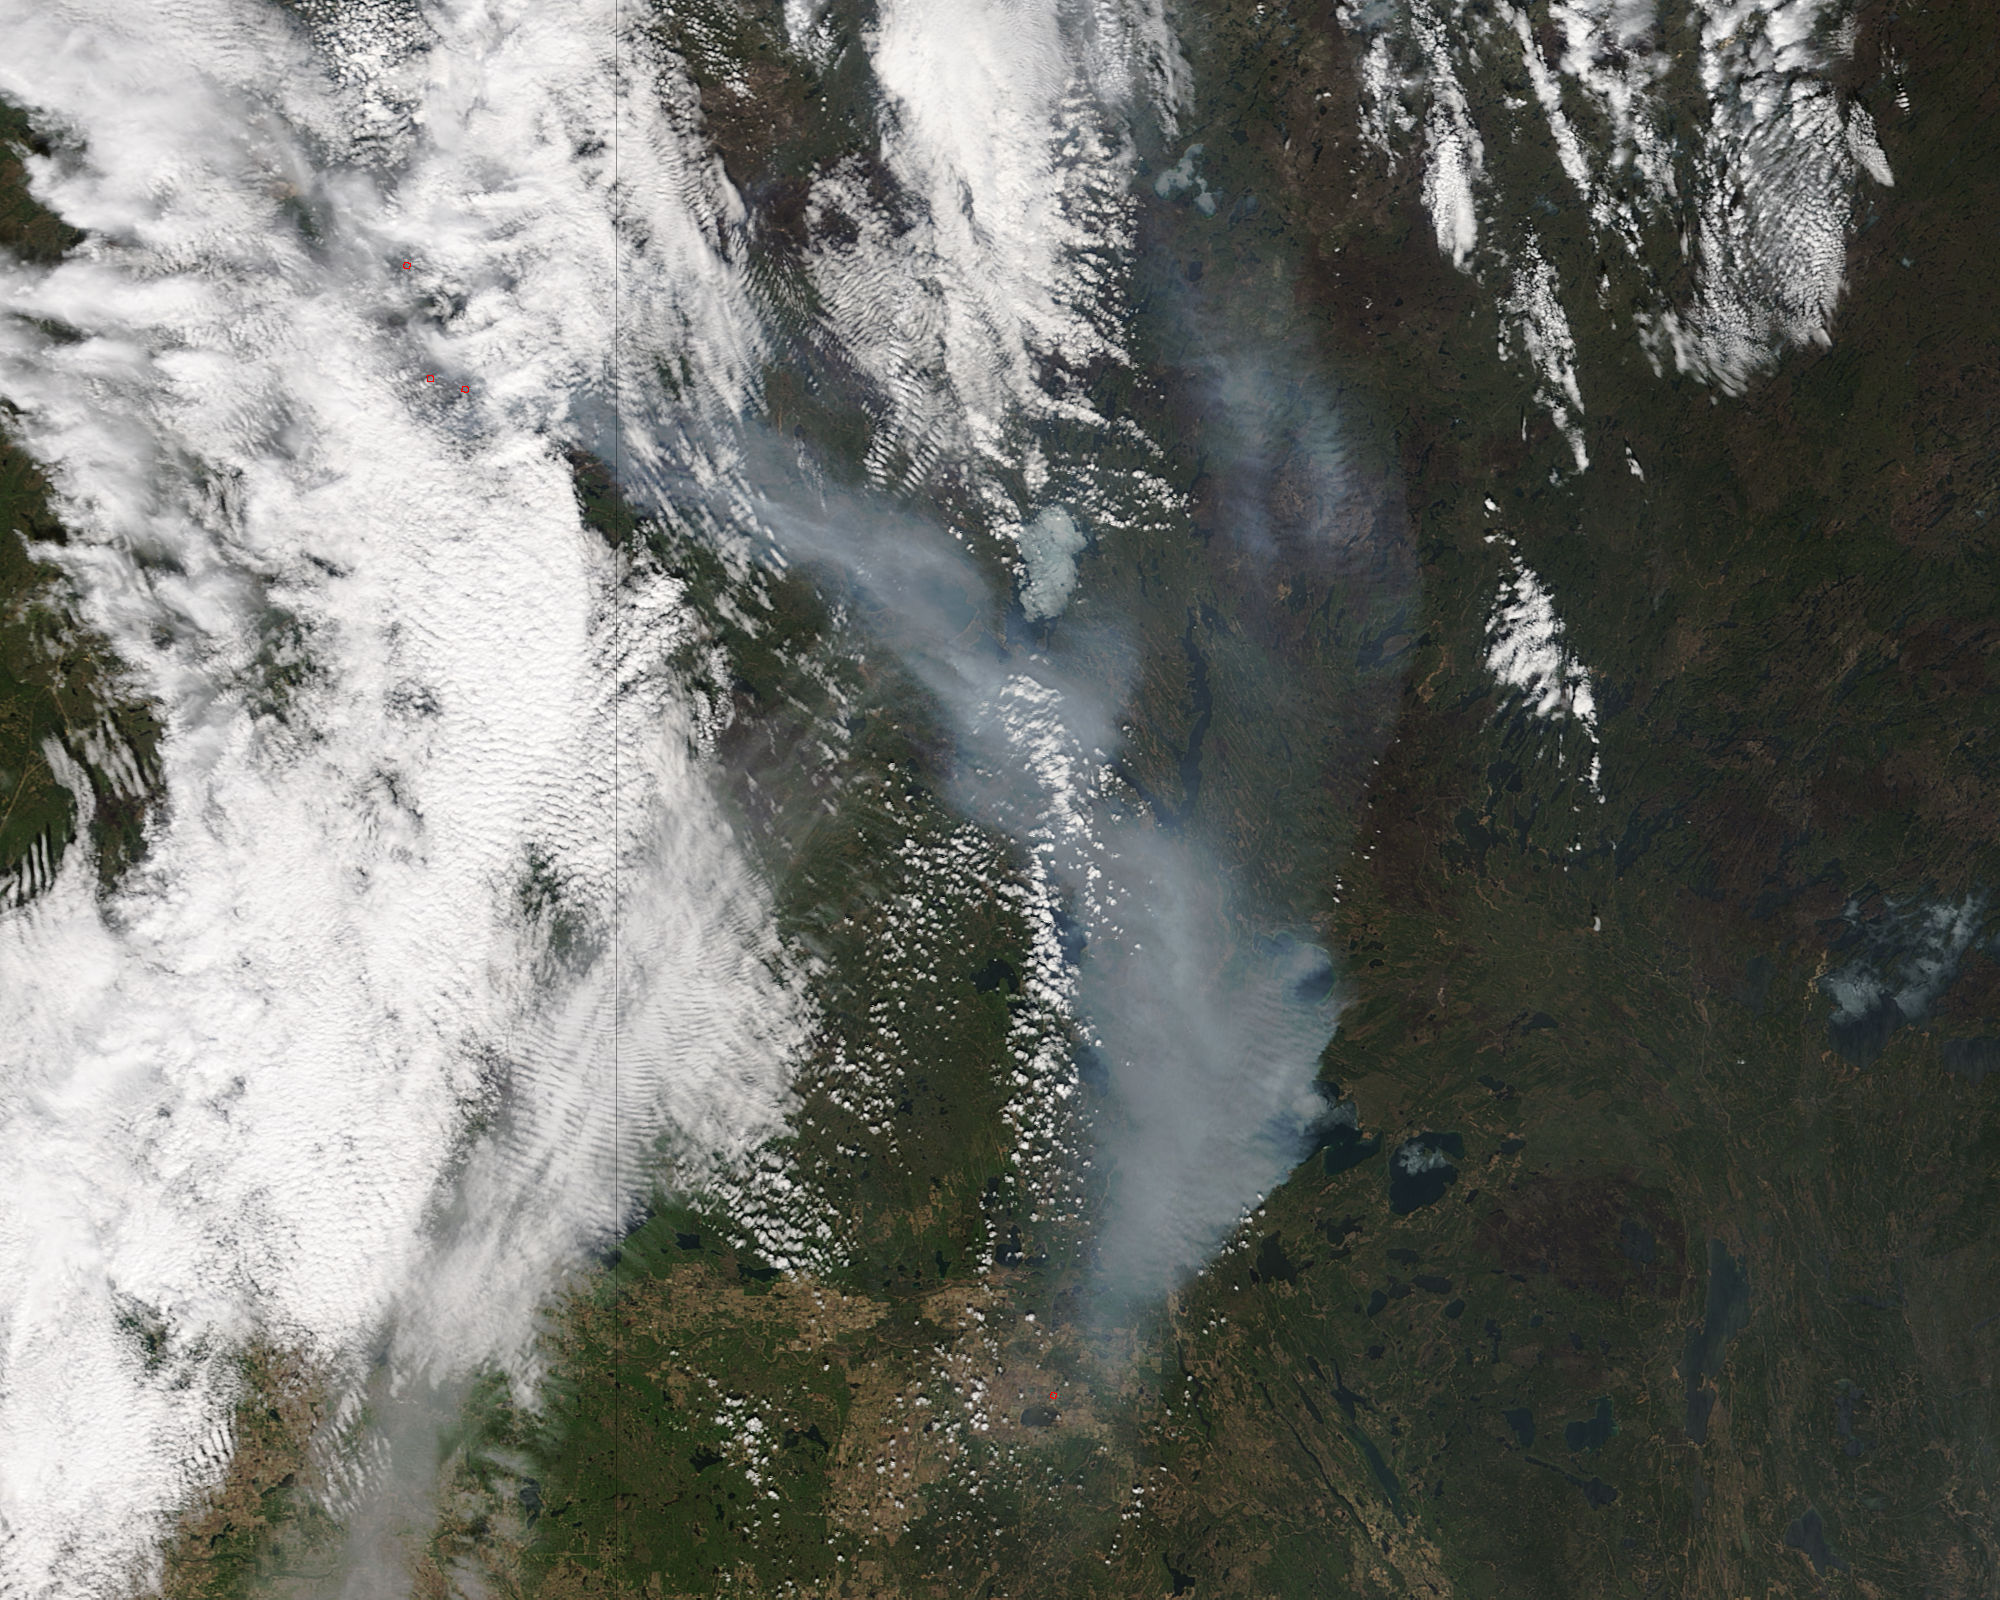 On May 8, 2016, the MODIS instrument on the Terra satellite captured this image of Ft. McMurray Fire in Alberta, Canada. [NASA Goddard MODIS Rapid Response Team]